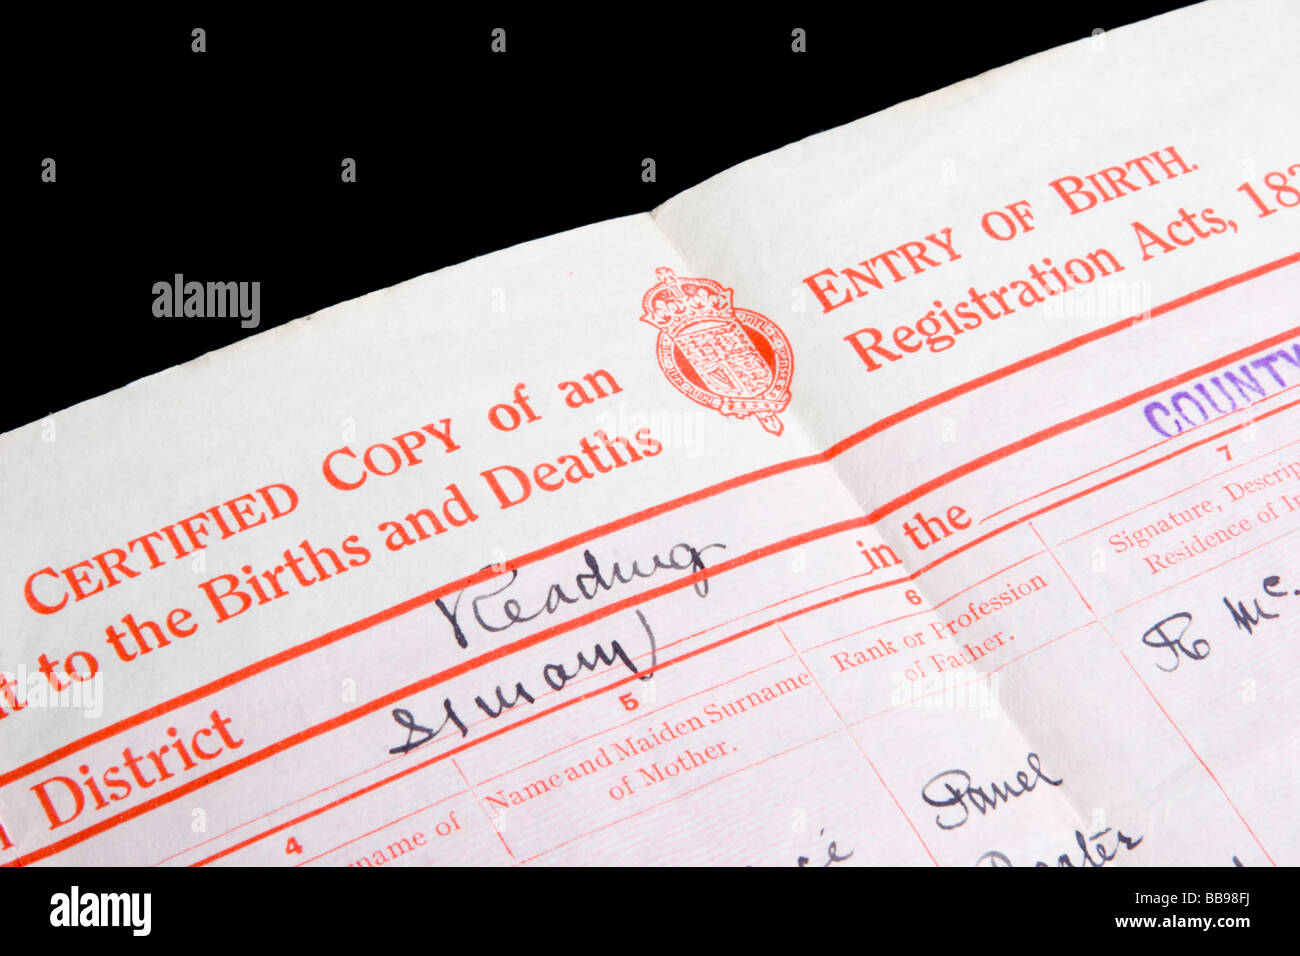 Copy of a uk birth certificate stock photo royalty free image copy of a uk birth certificate aiddatafo Choice Image